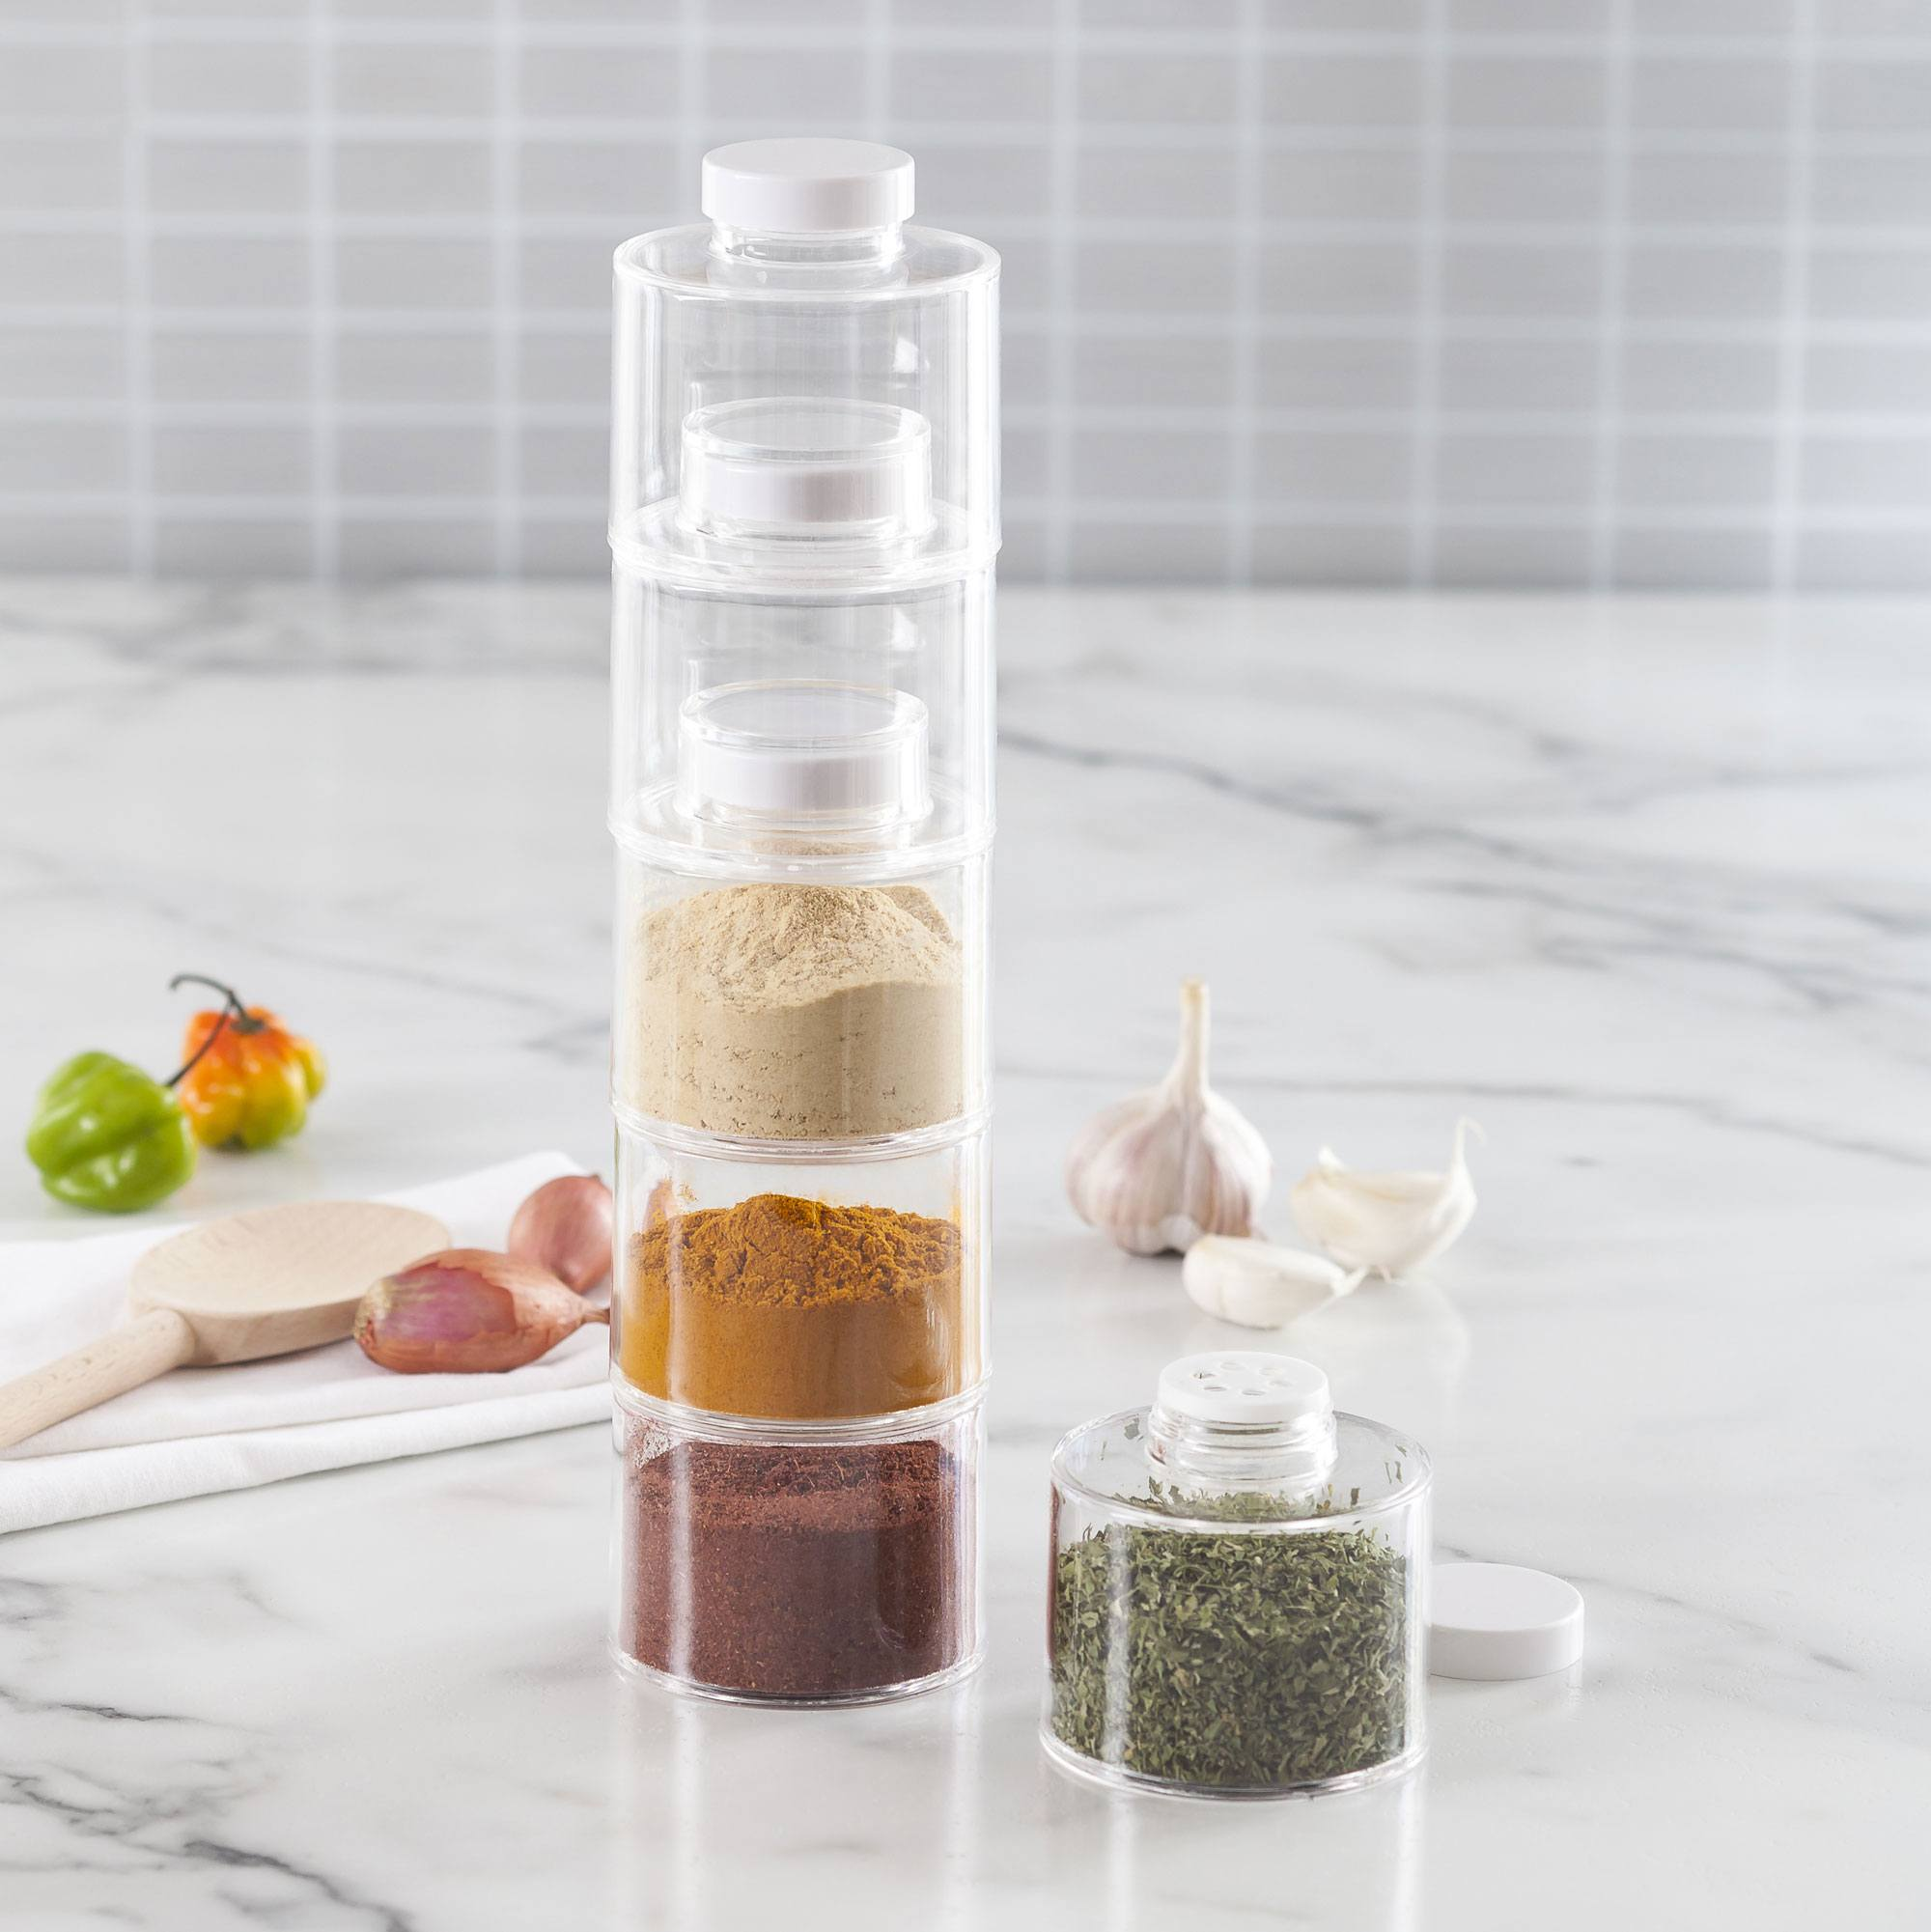 6 acrylic stackable spice jars with white lids